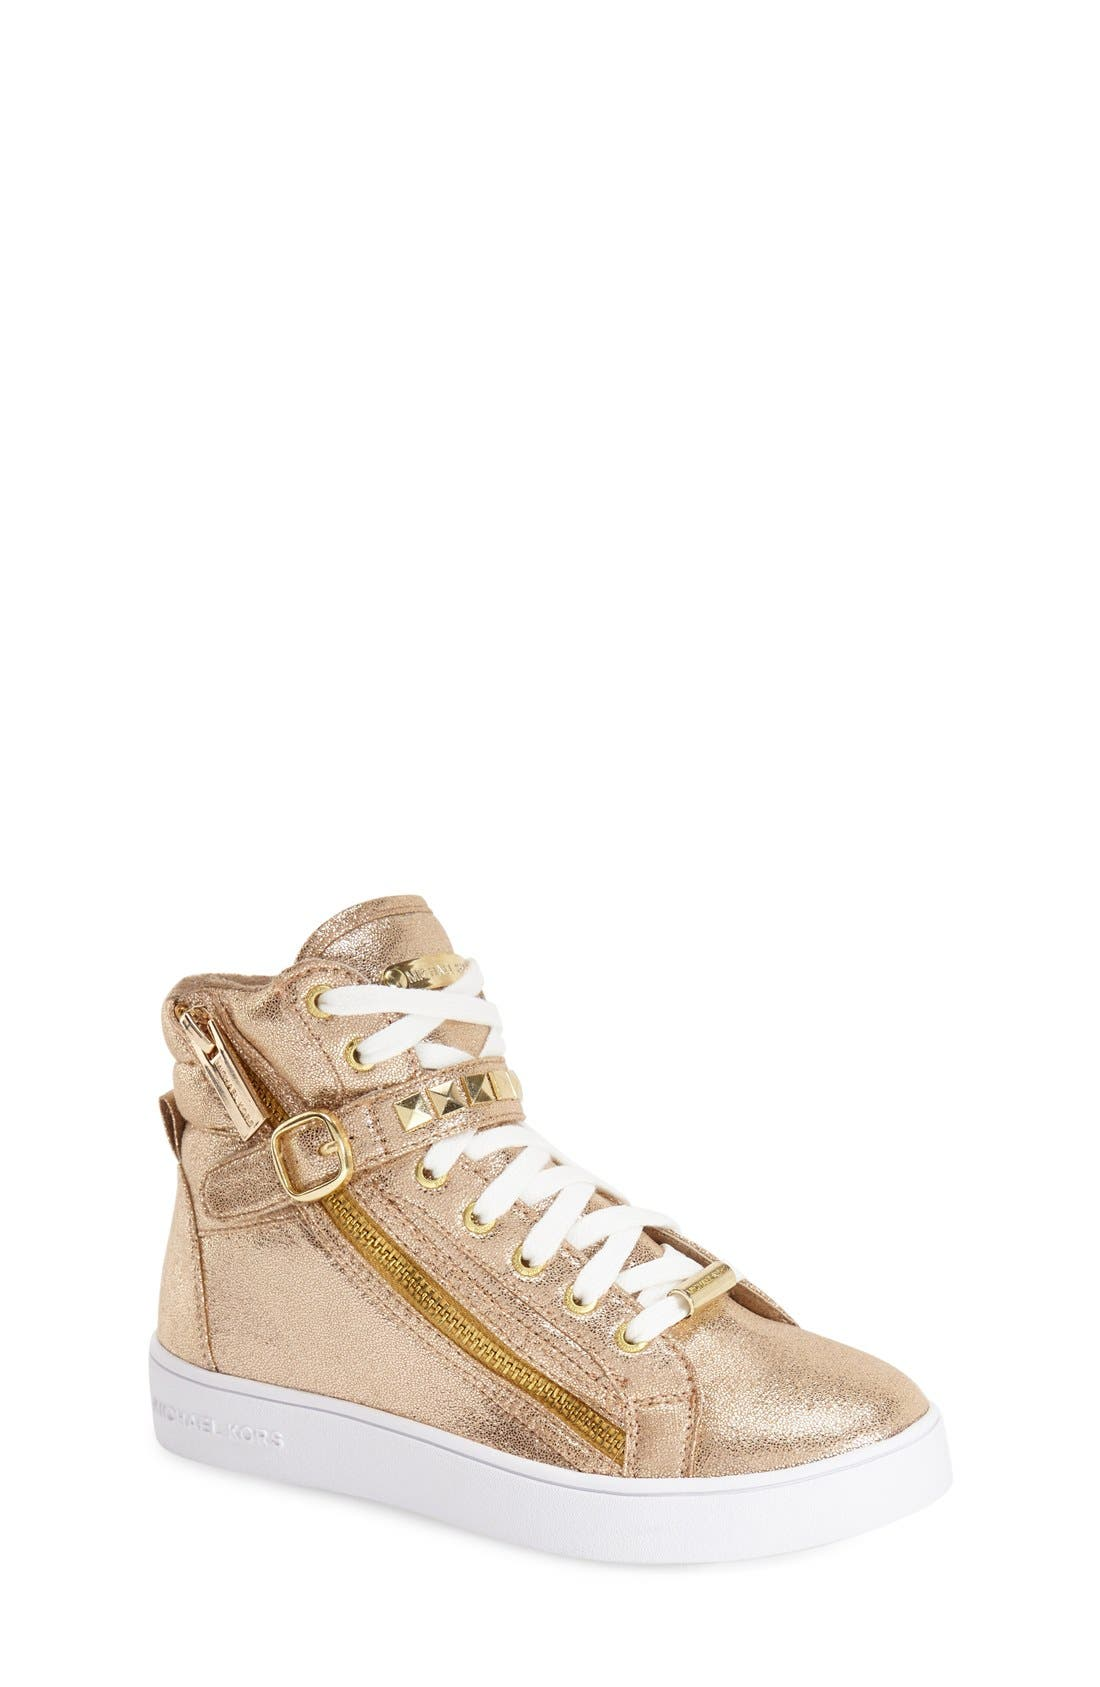 'Ivy Rory' High Top Sneaker,                             Main thumbnail 4, color,